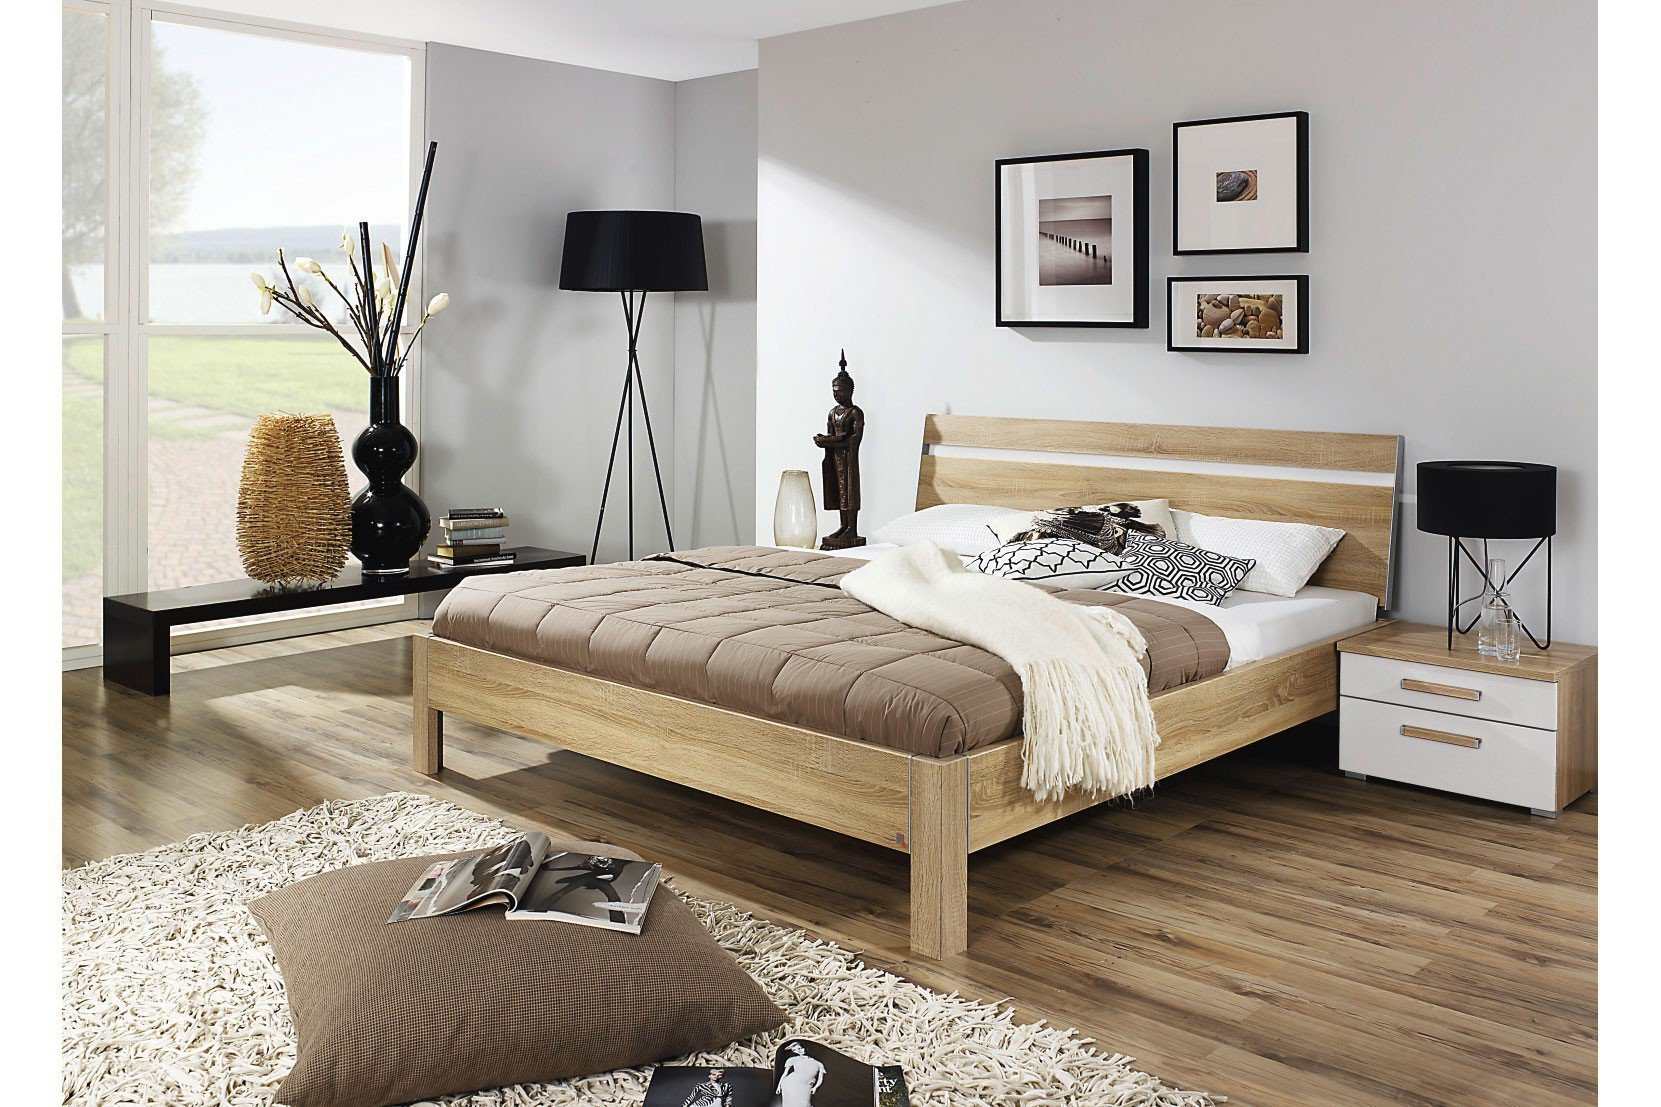 rauch solo bett 140 x 200 eiche nachbildung wei m bel letz ihr online shop. Black Bedroom Furniture Sets. Home Design Ideas